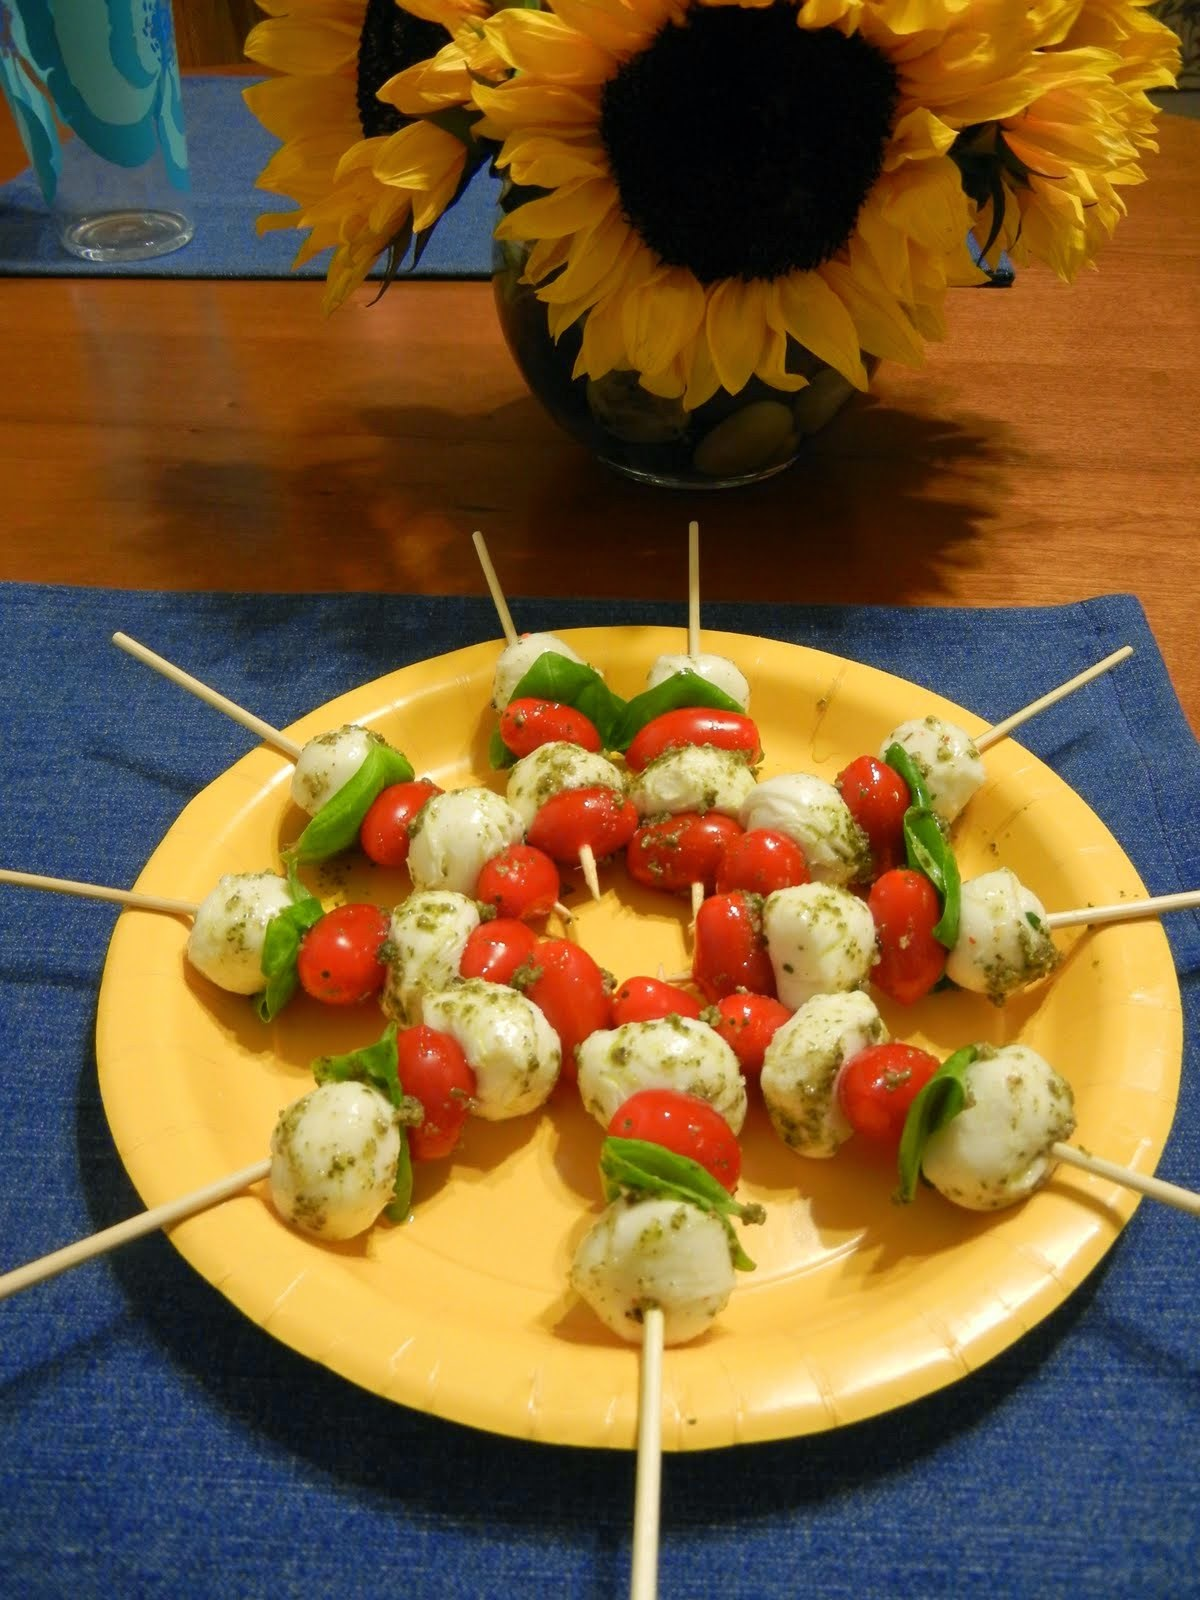 Eggface%2BCaprese%2BSkewers%2BE Weight Loss Recipes Cool Eats   Foods to eat in yet another heat wave